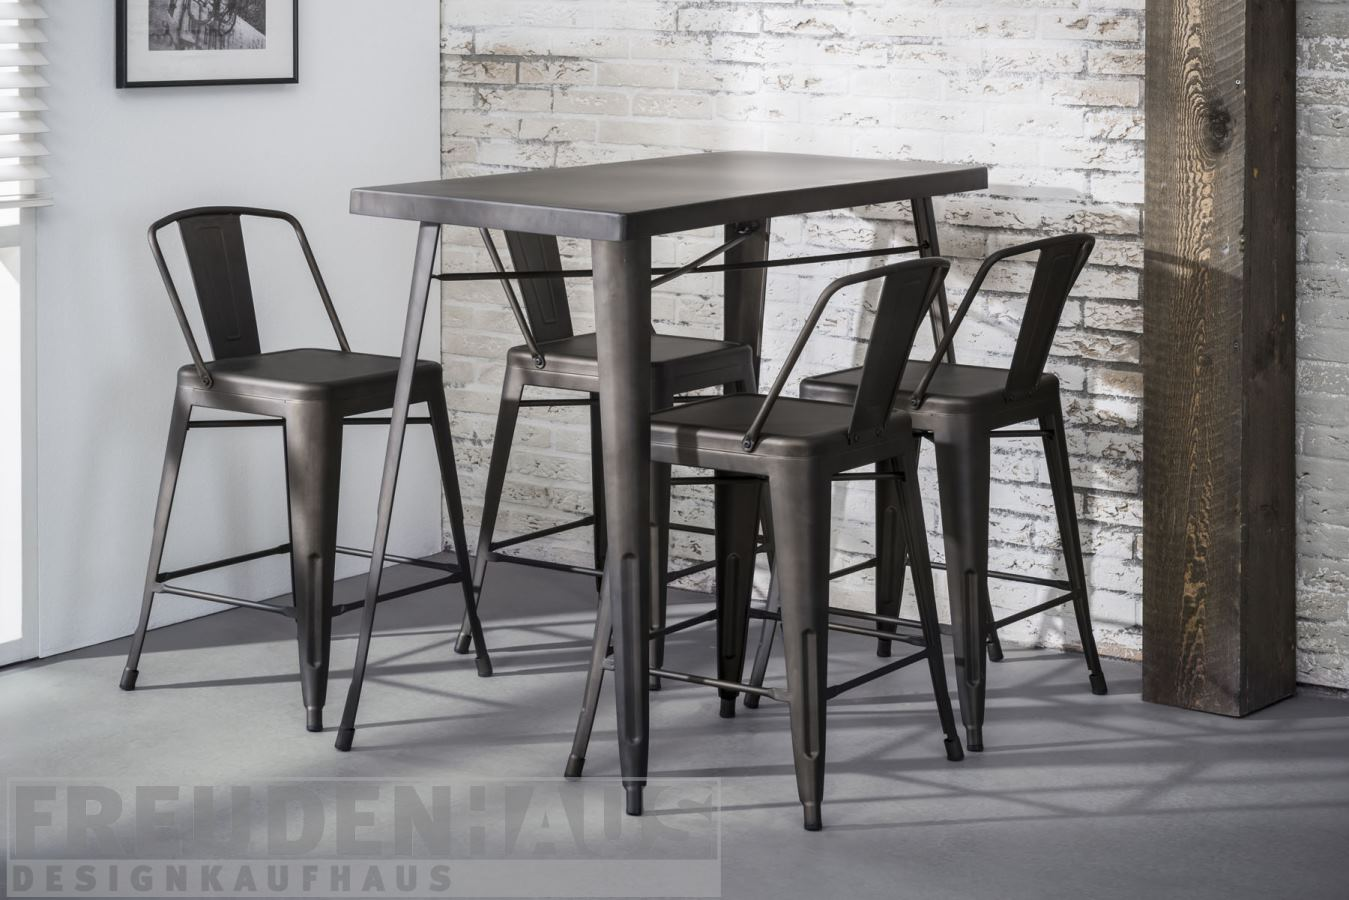 stehtisch bartisch bistro metall industrial 120 x 60 m bel essen esstische freudenhaus. Black Bedroom Furniture Sets. Home Design Ideas